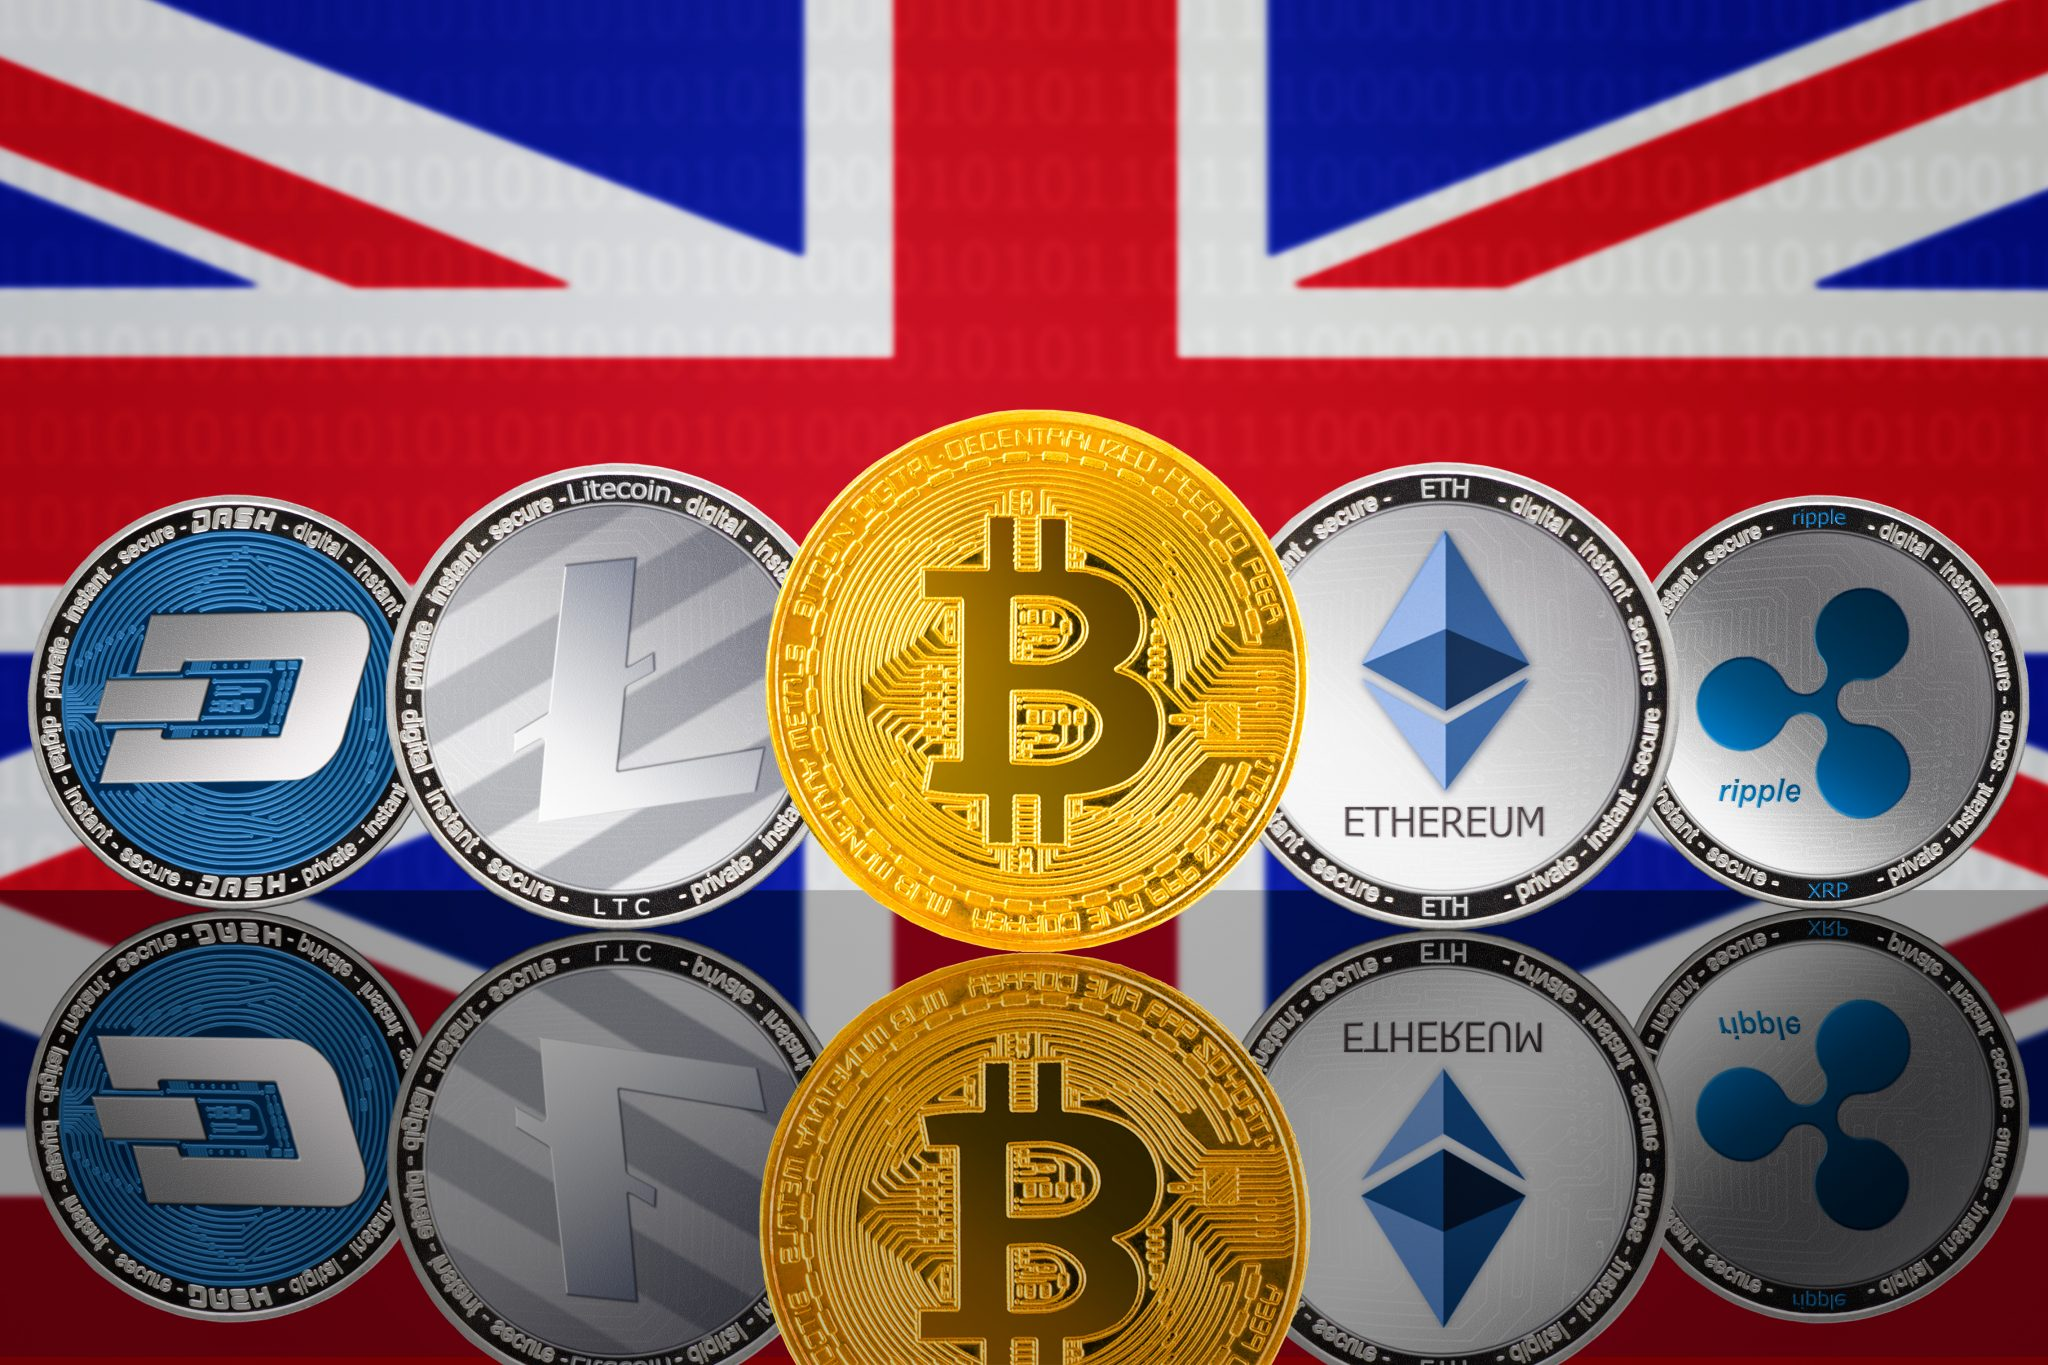 Cryptocurrency coins - Bitcoin (BTC), Litecoin (LTC), Ethereum (ETH), Ripple (XRP), DASH on the background of the flag of United Kingdom. Front view